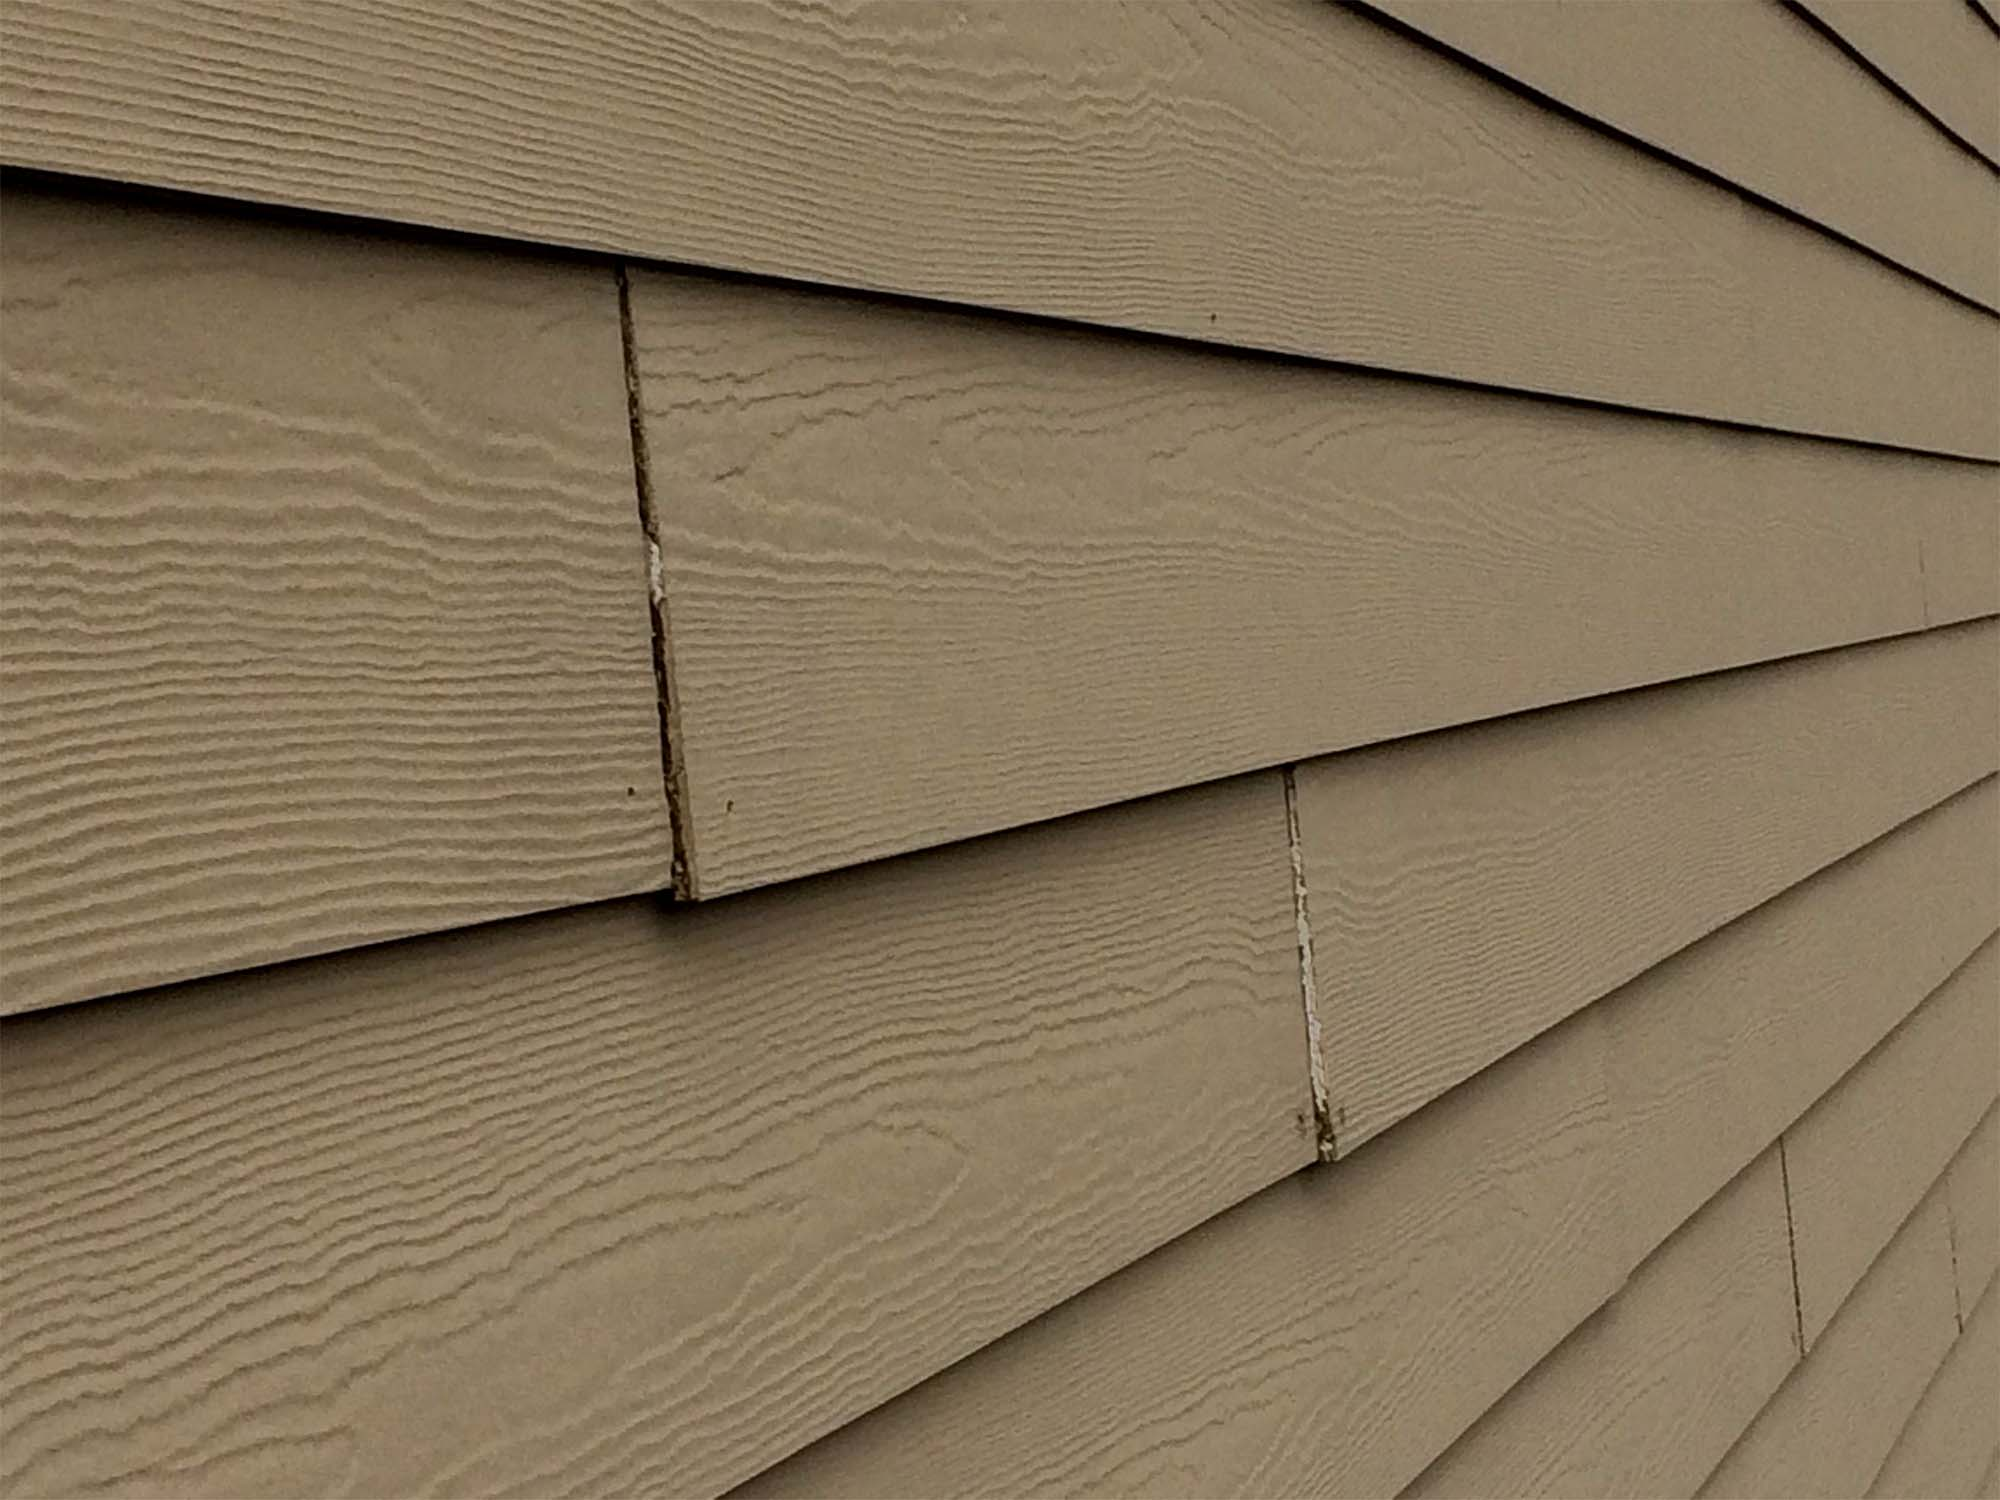 worst problems with hardie siding fiber cement siding with bad unpainted joints